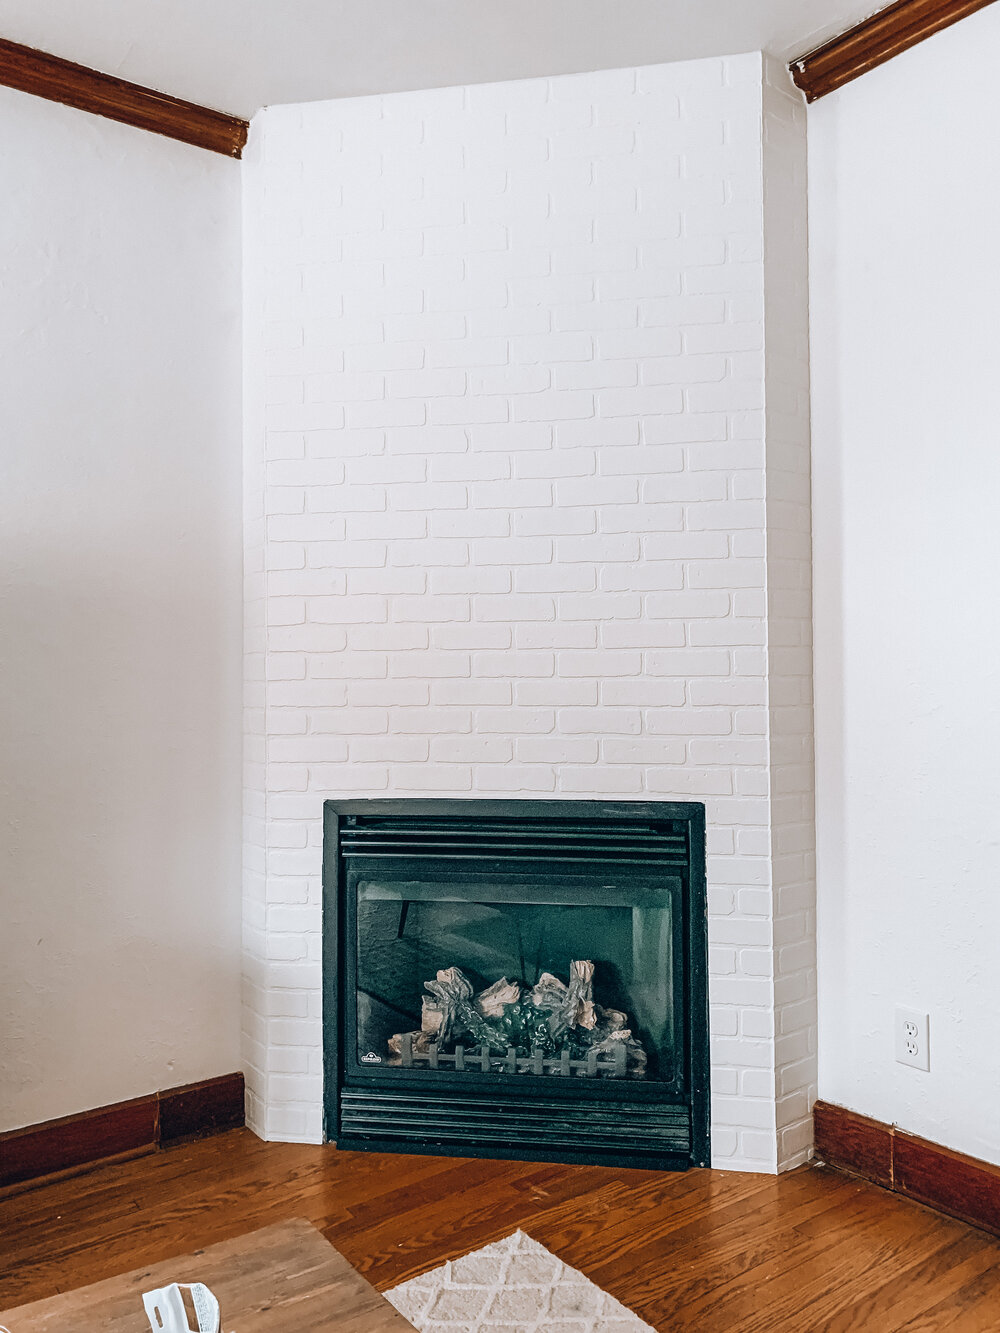 Diy Faux Brick Fireplace Surround One Room Challenge Week Three Mel Makes A Mess